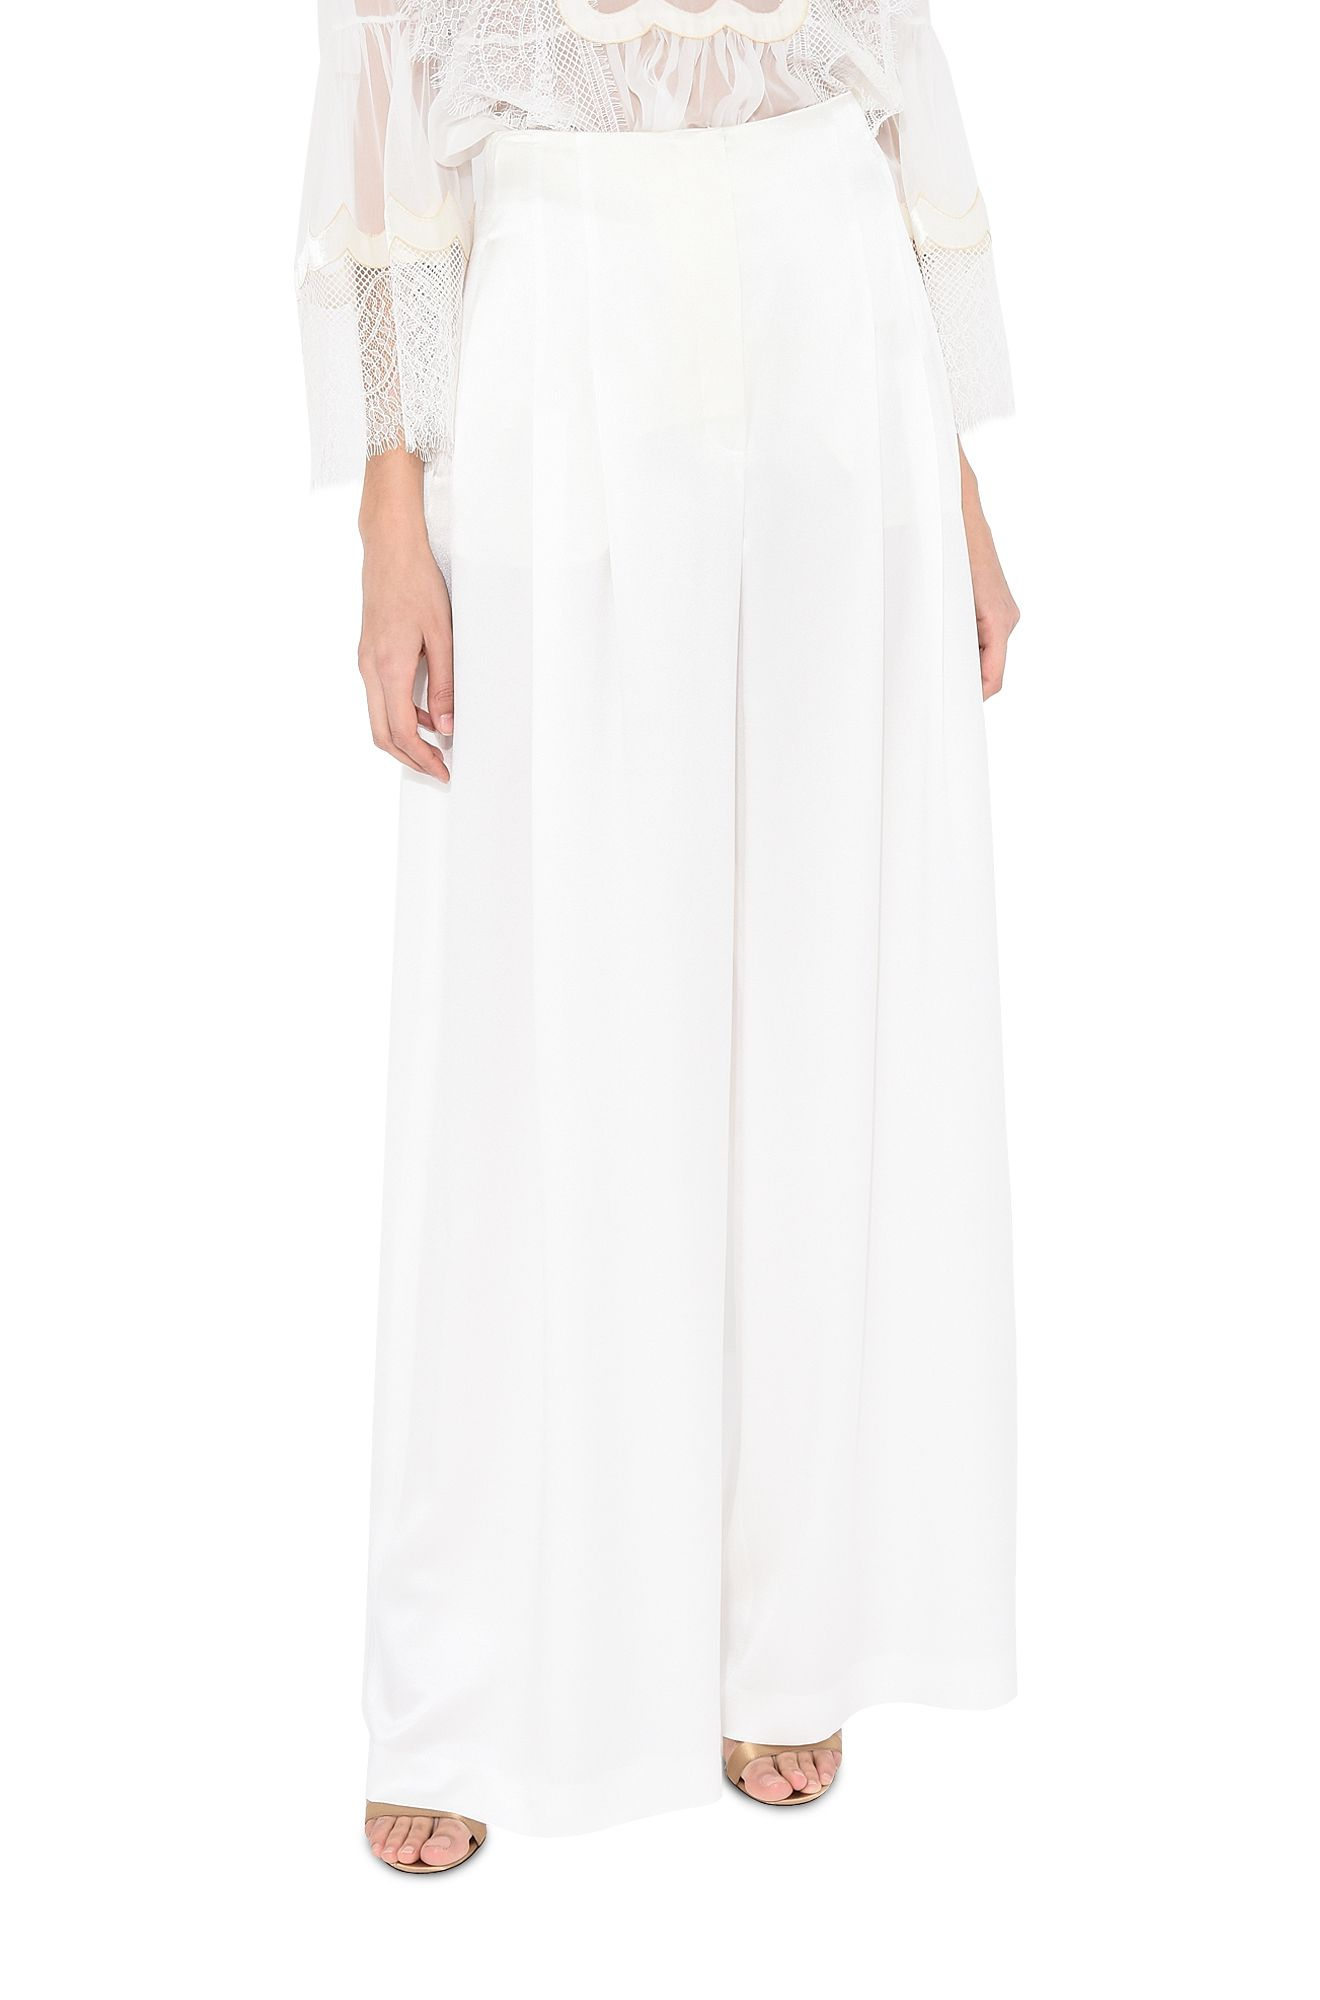 ALBERTA FERRETTI GONNA LUNGA IN LAMÈ Woman Long skirt in lamé r